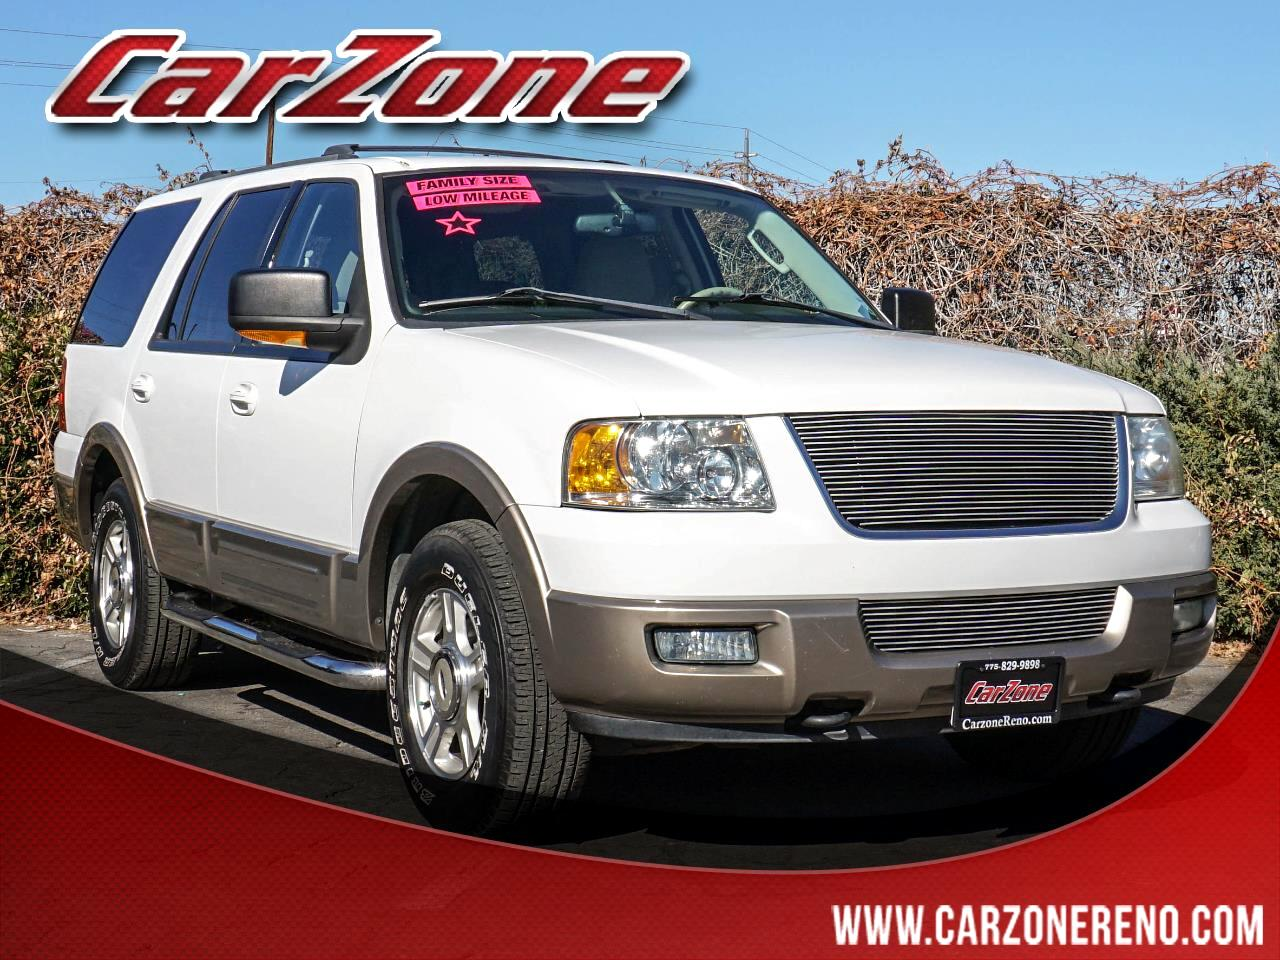 Ford Expedition 5.4L Eddie Bauer 4WD 2003